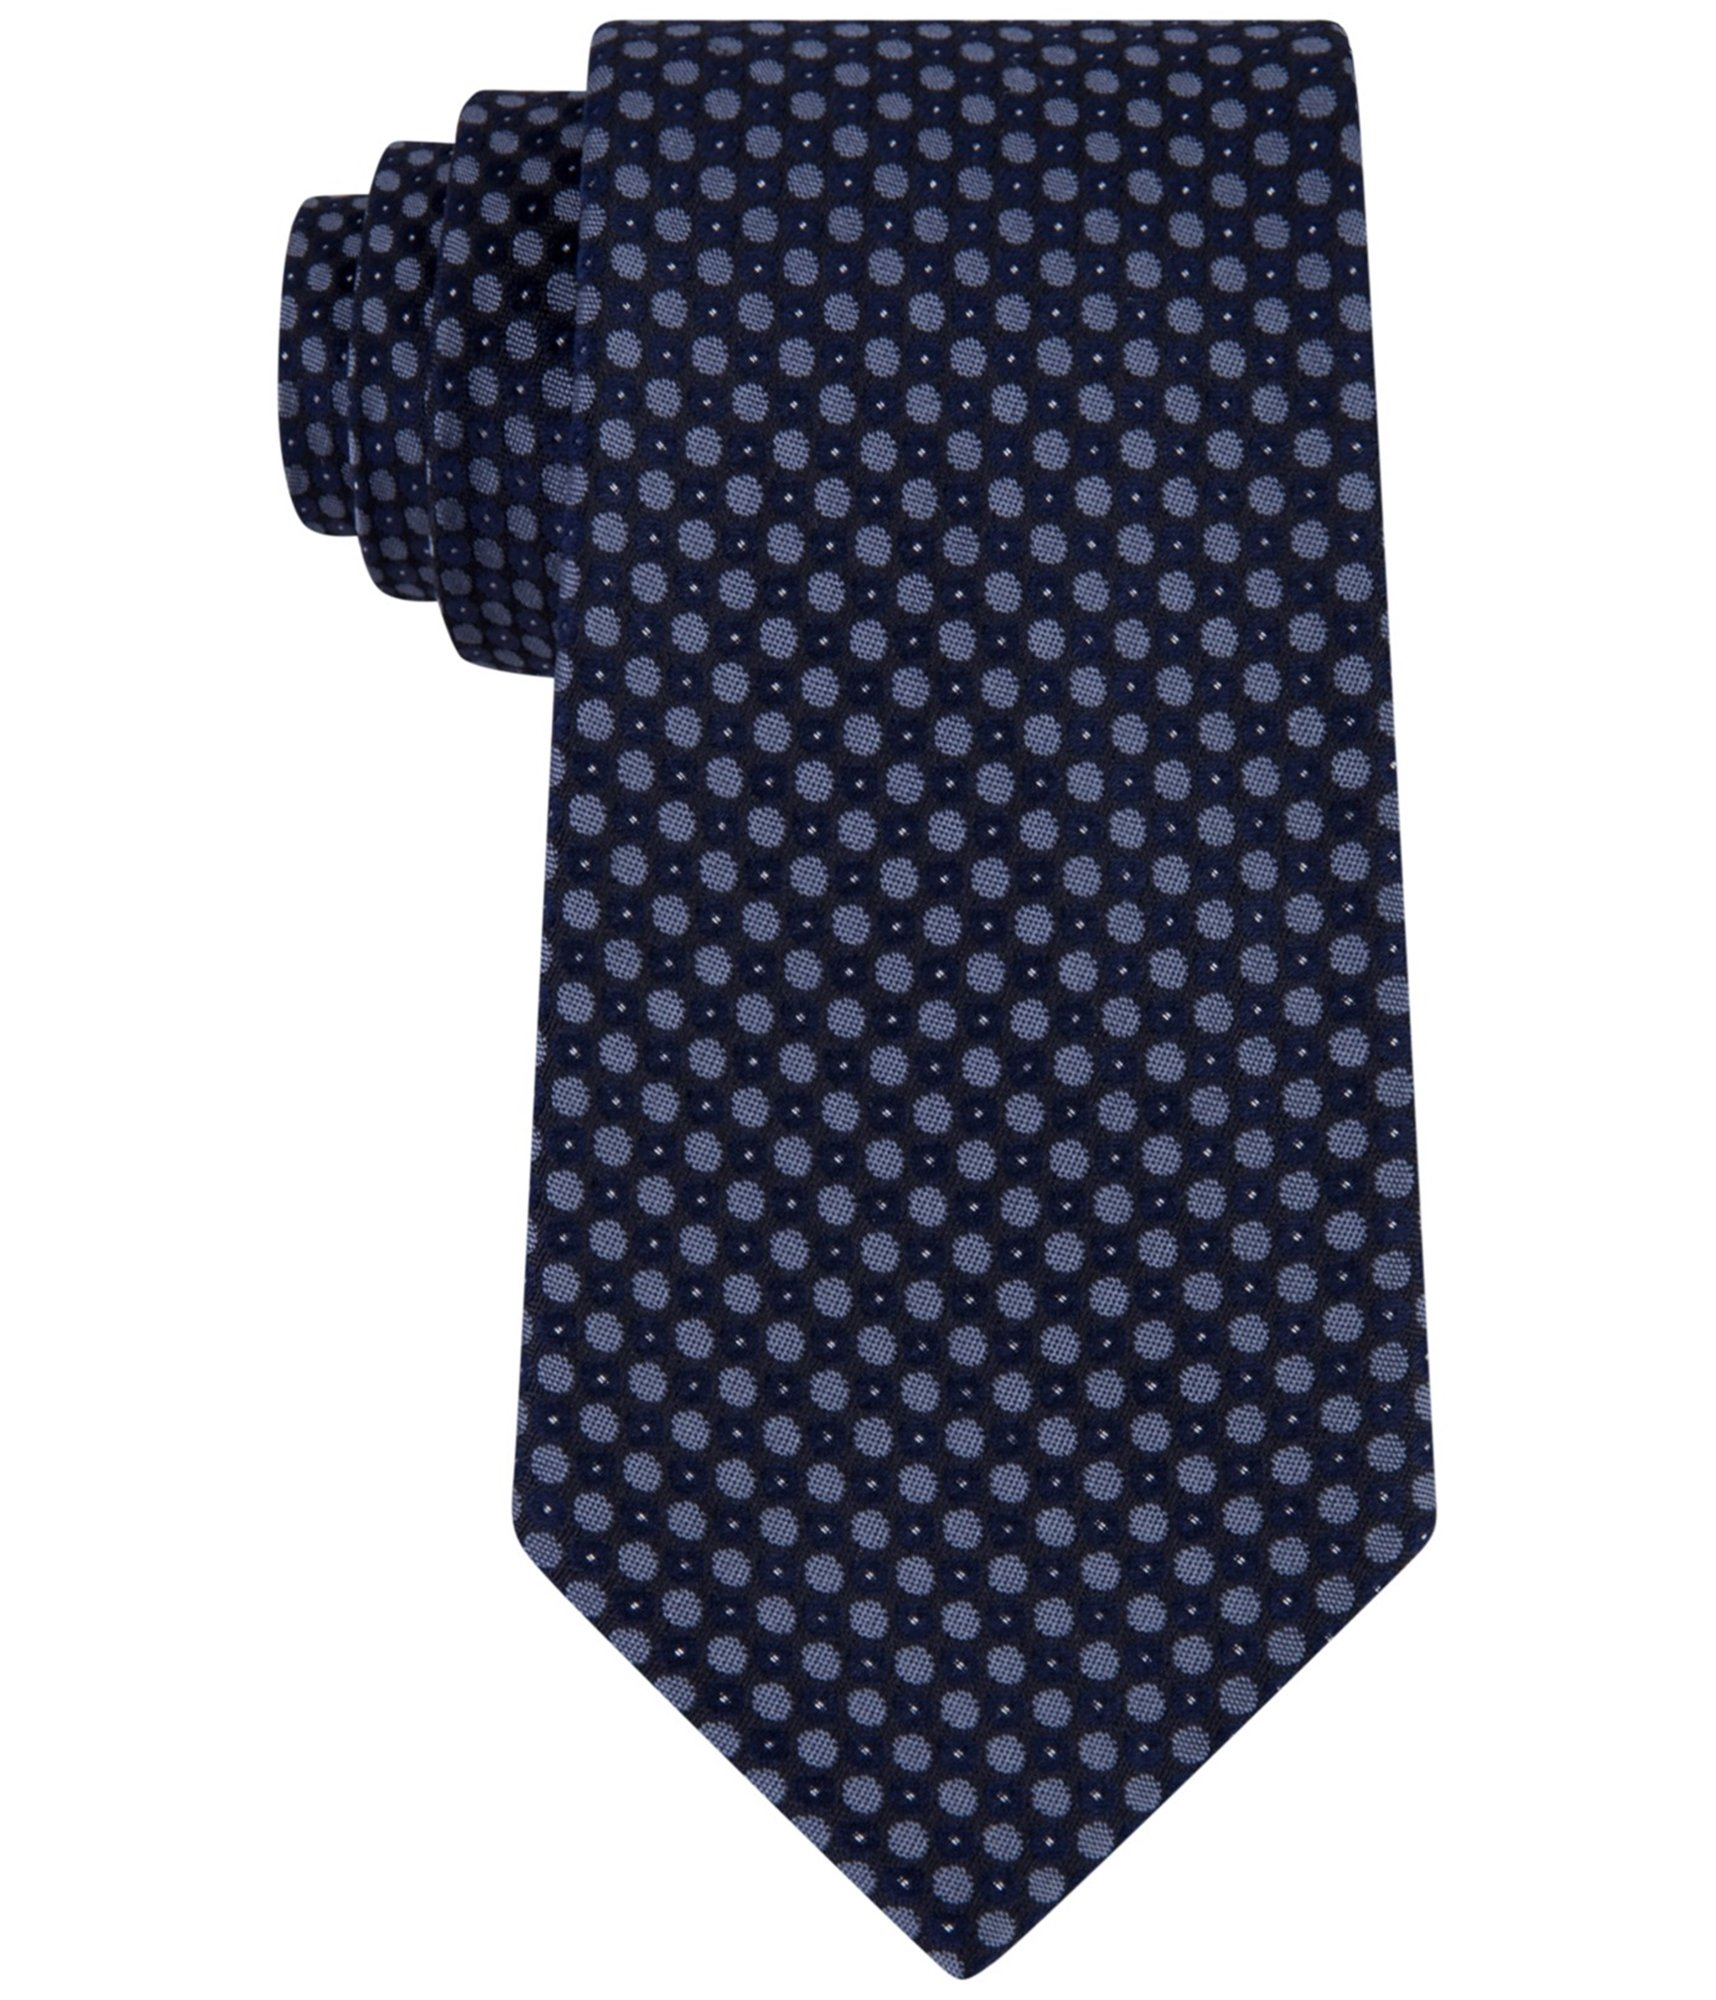 Kenneth Cole REACTION Men's Bling Dot Tie, Navy, One Size